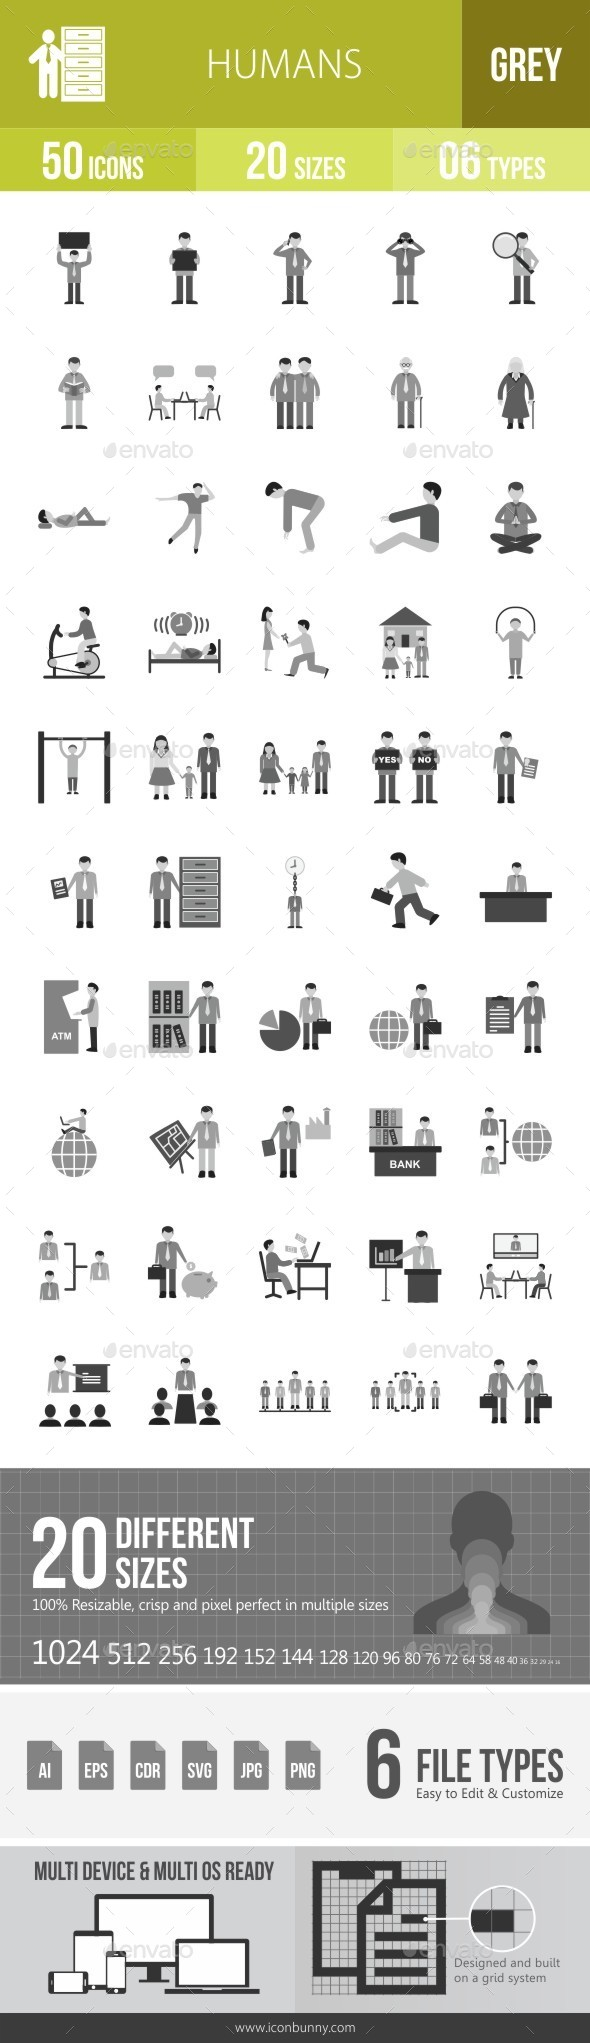 Humans Greyscale Icons - Icons